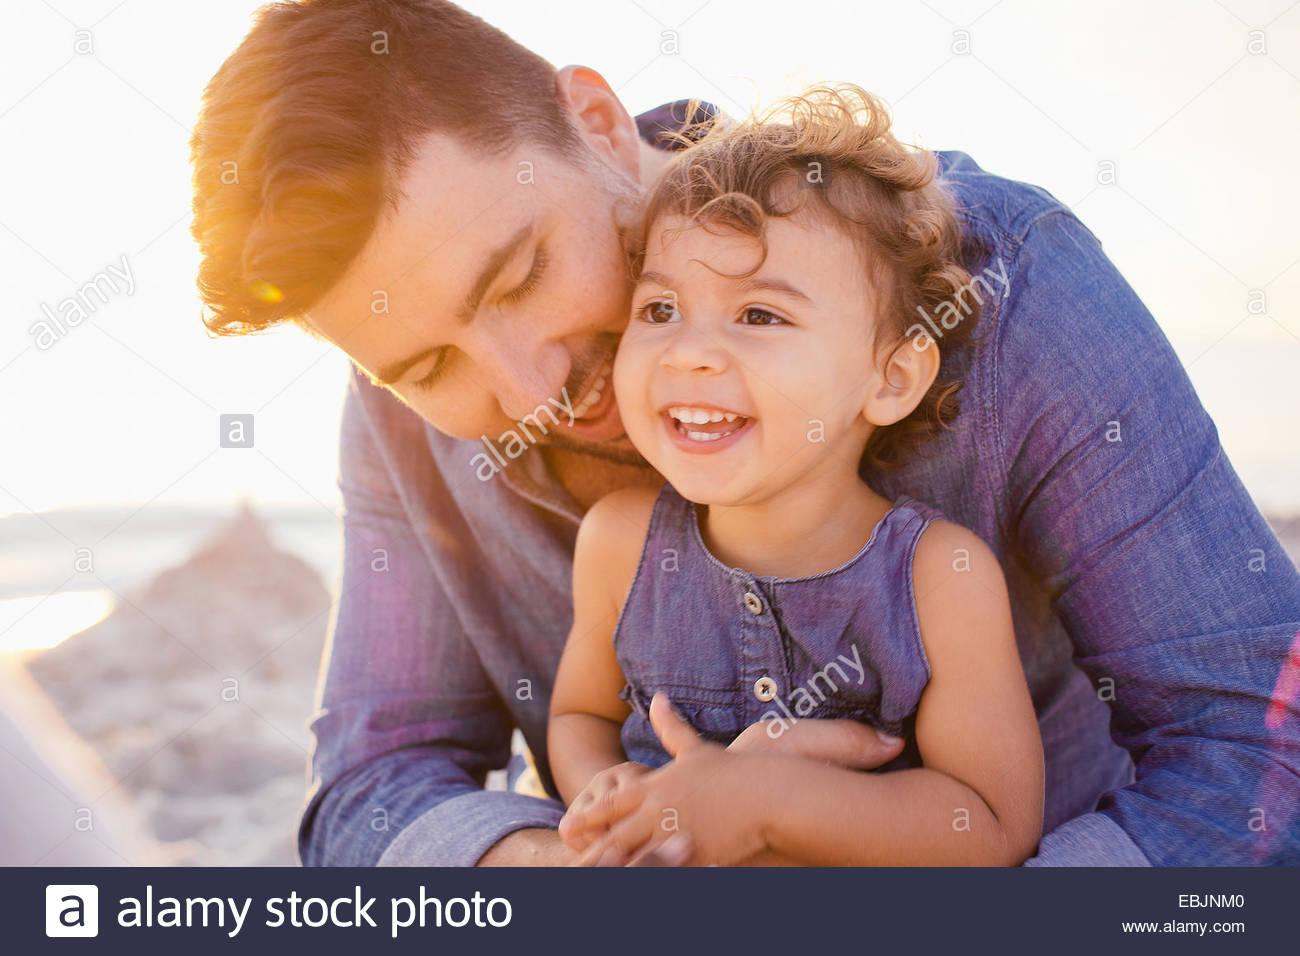 Portrait of father and toddler daughter at beach, Tuscany, Italy - Stock Image